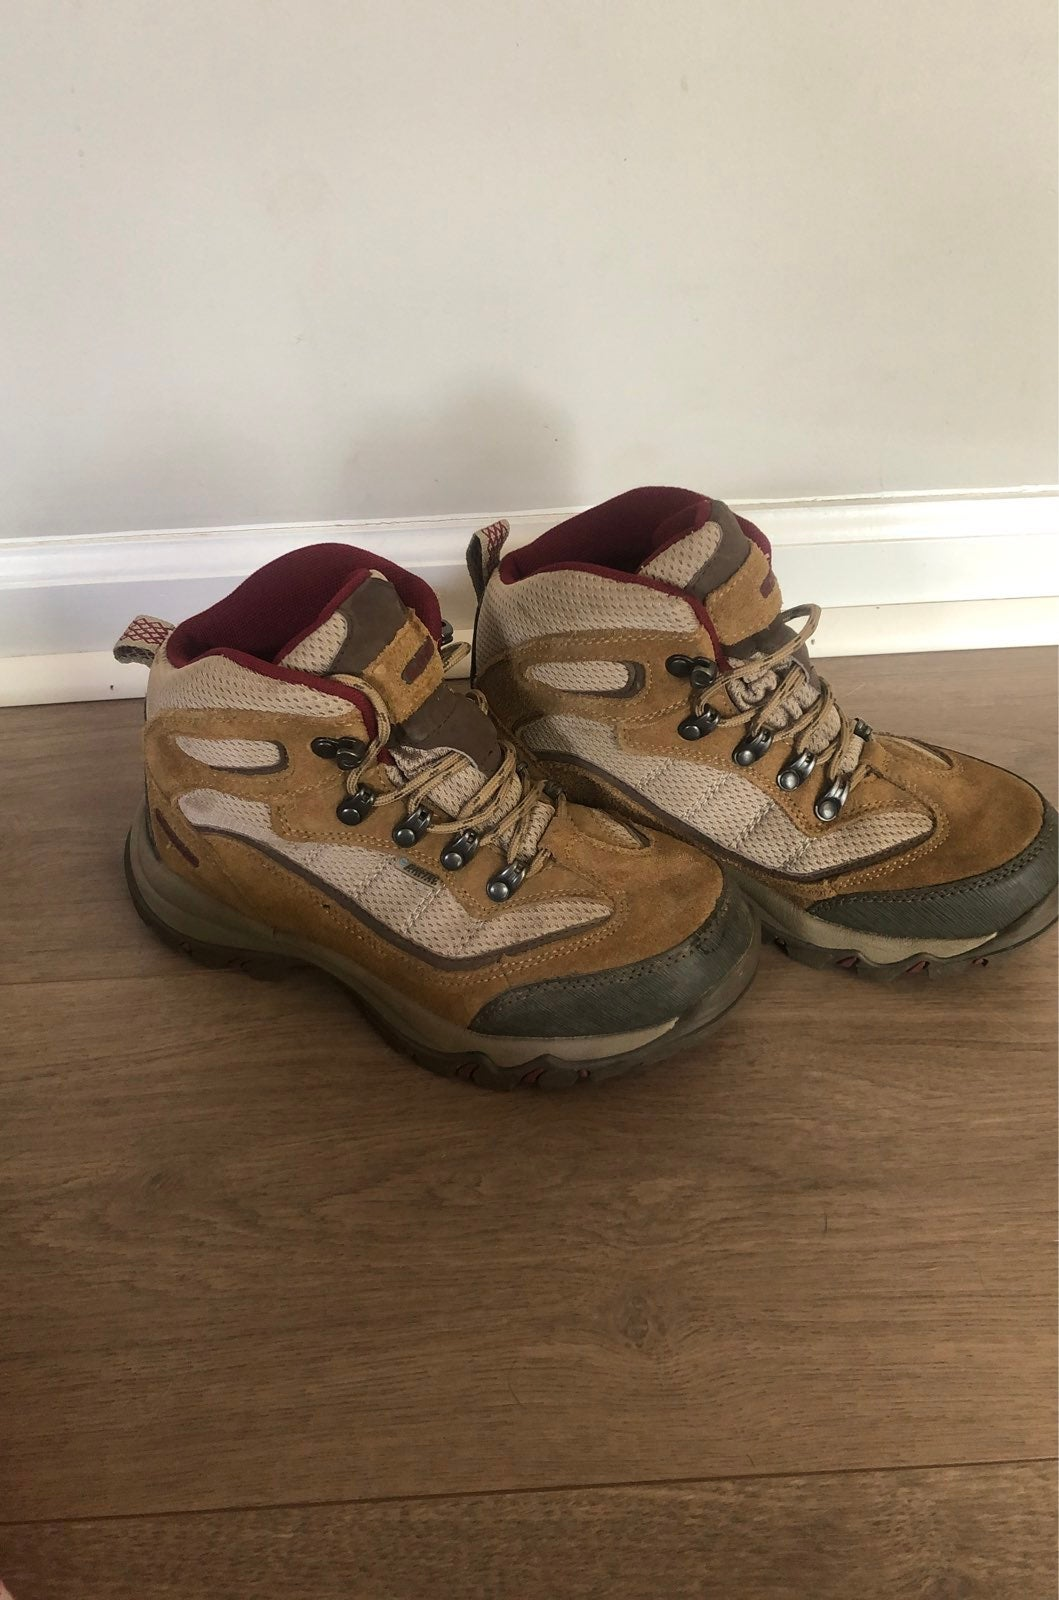 womens hiking boots size 6.5